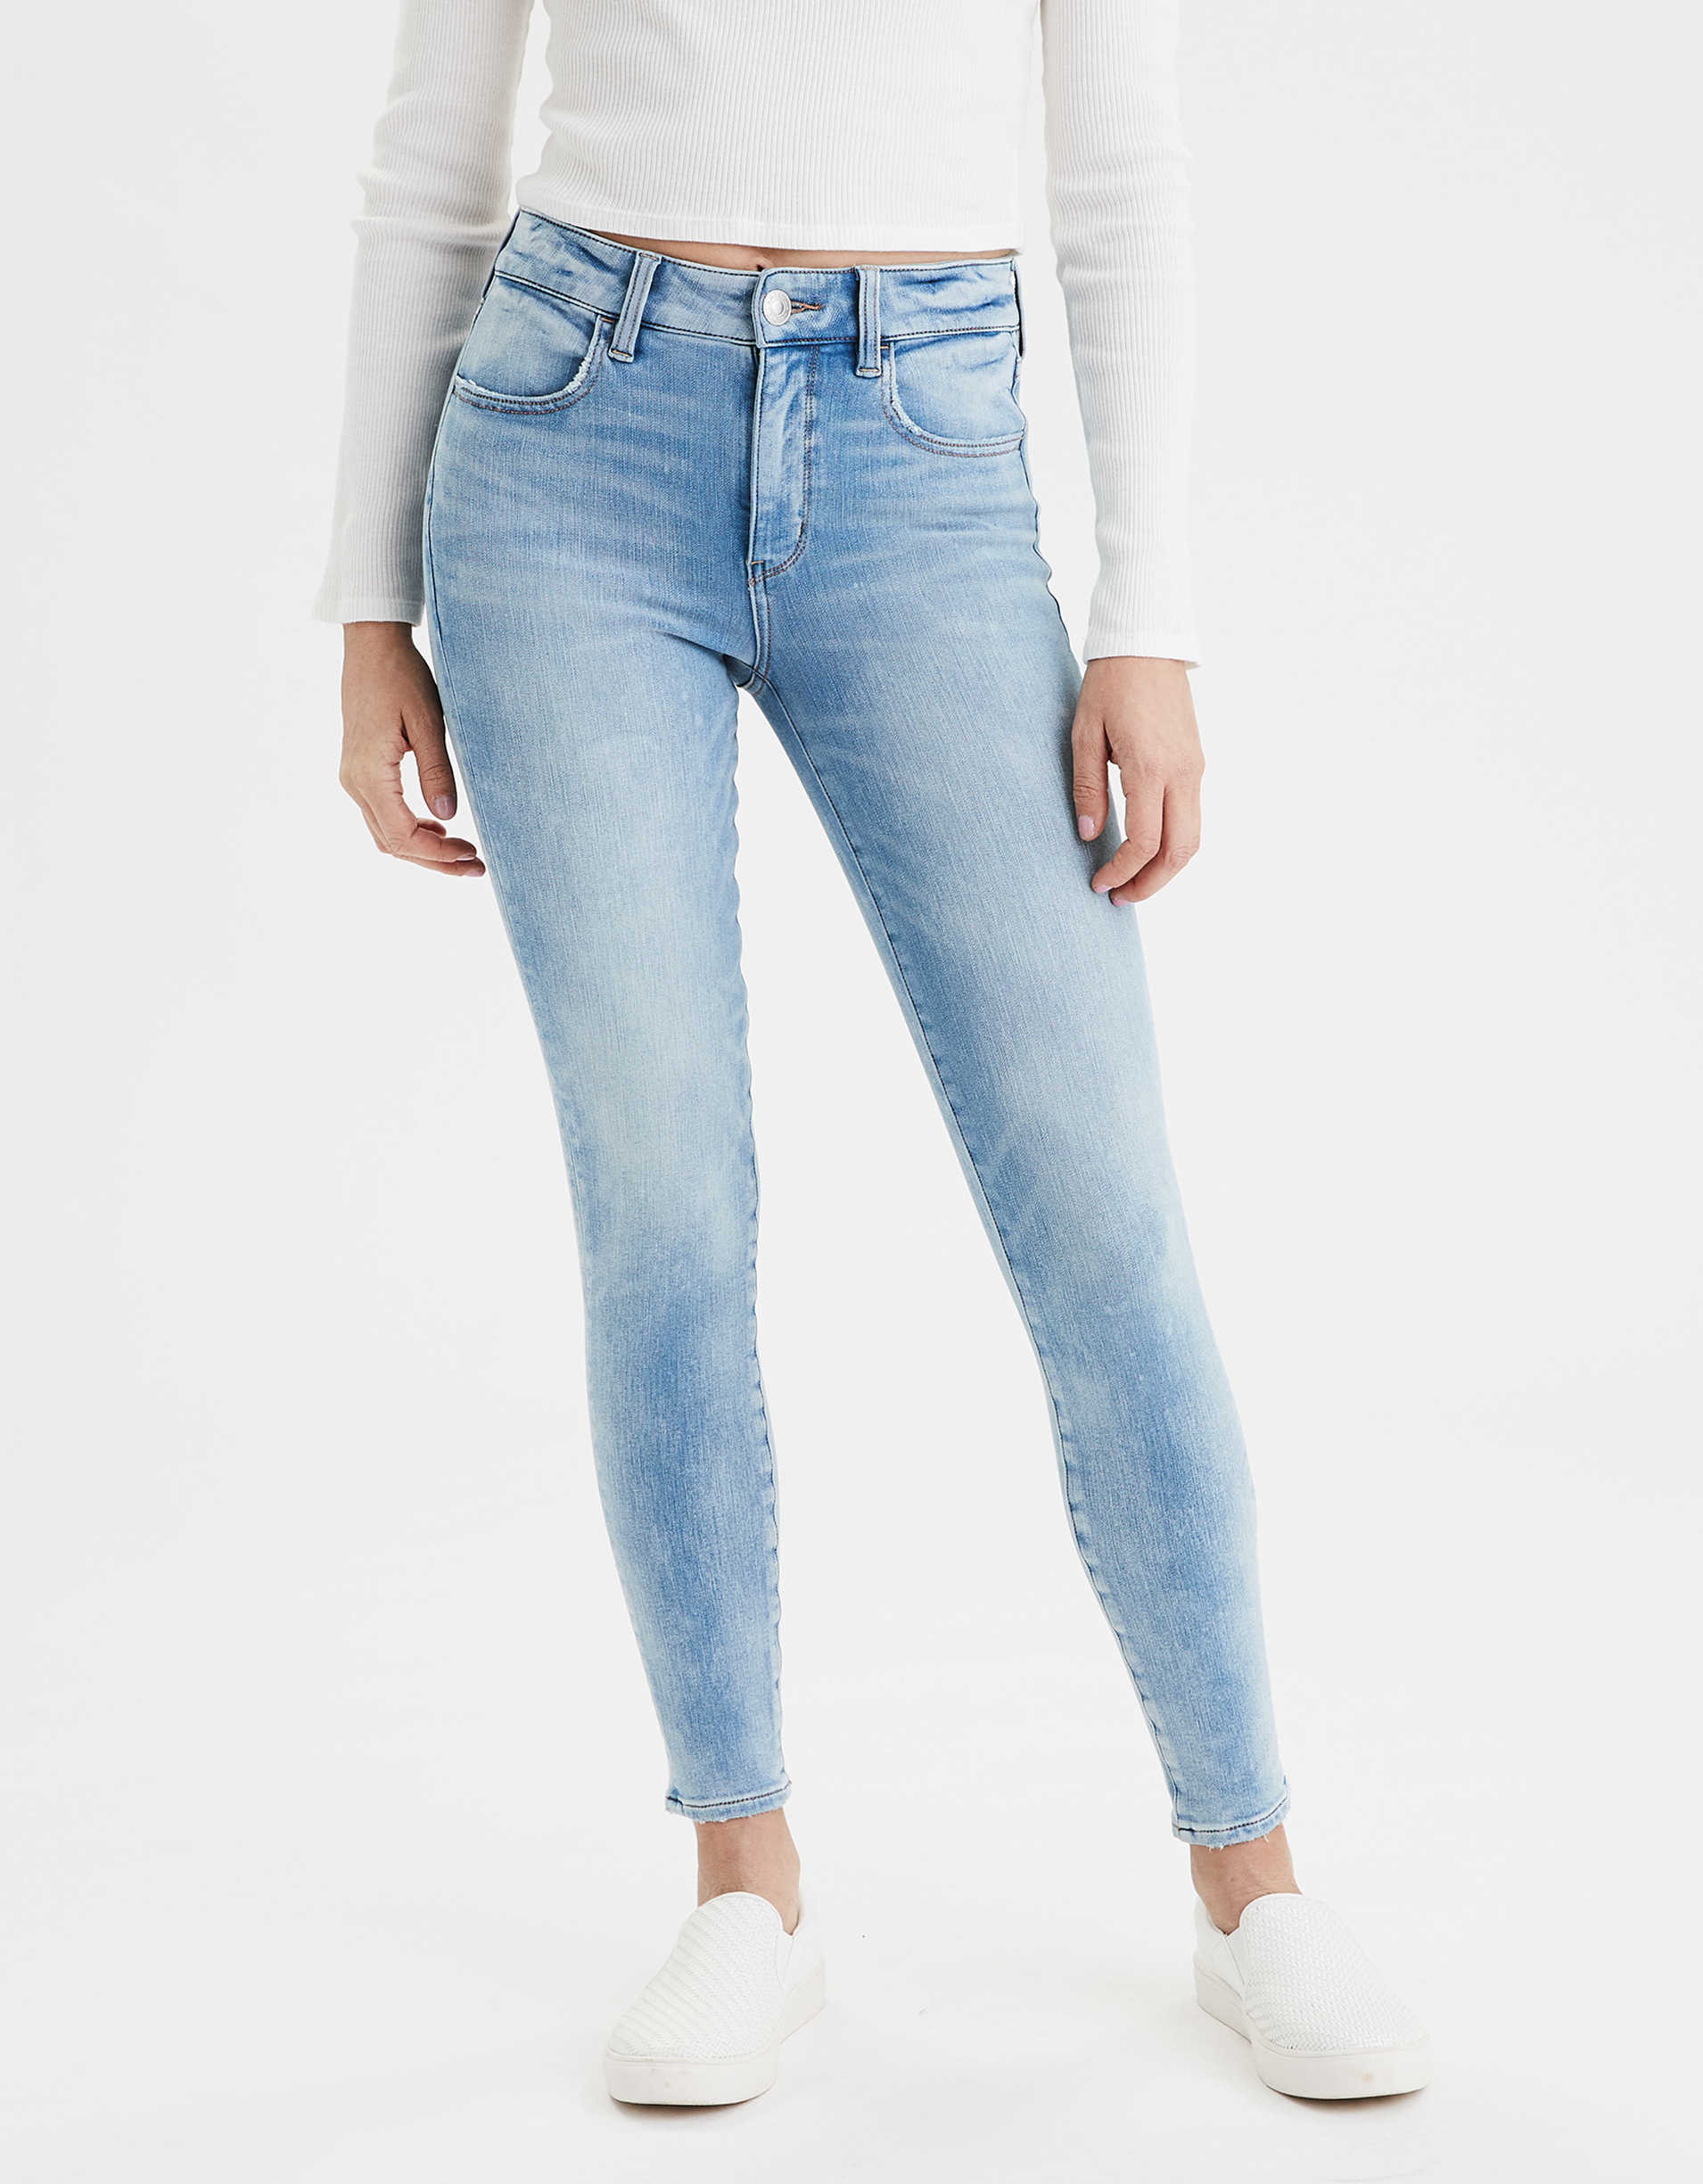 AE High-Waisted Jegging Crop